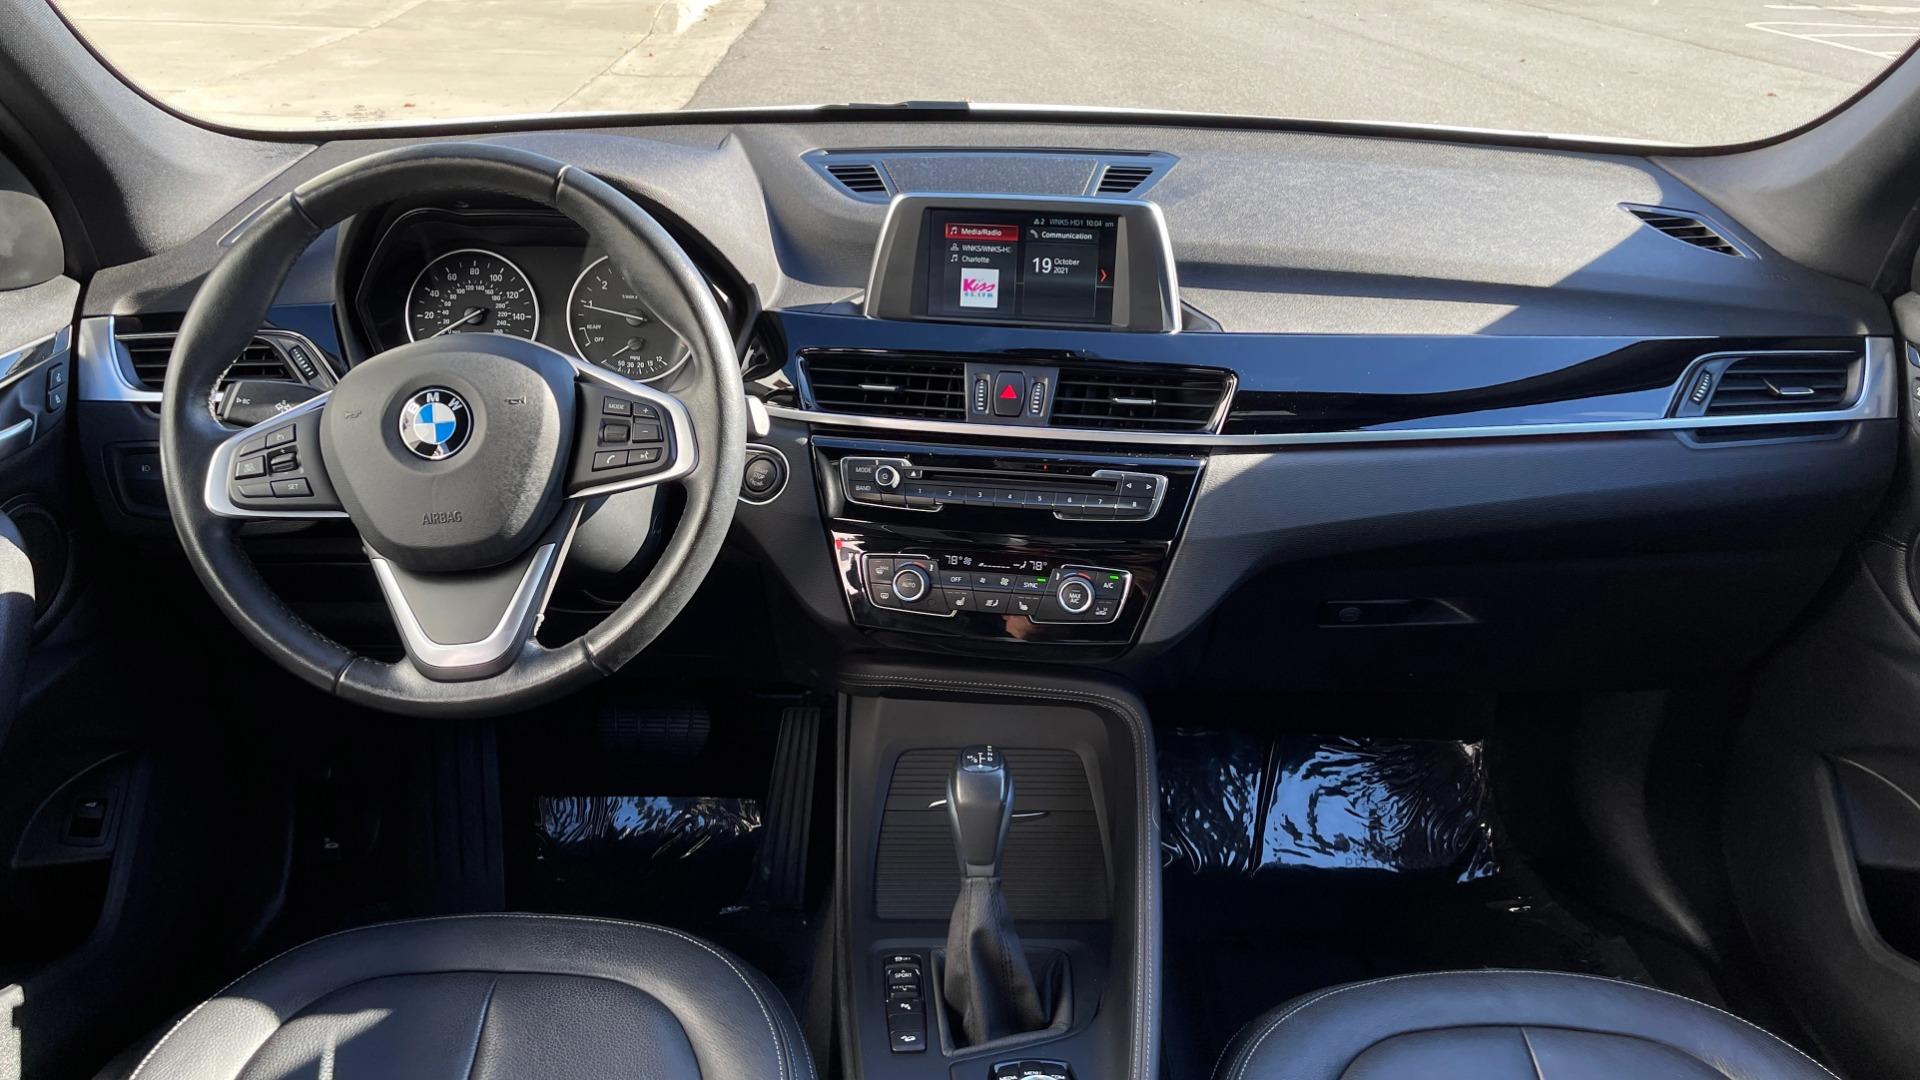 Used 2018 BMW X1 XDRIVE28I / CONV PKG / PANO-ROOF / PARK ASST / REARVIEW for sale $31,995 at Formula Imports in Charlotte NC 28227 48